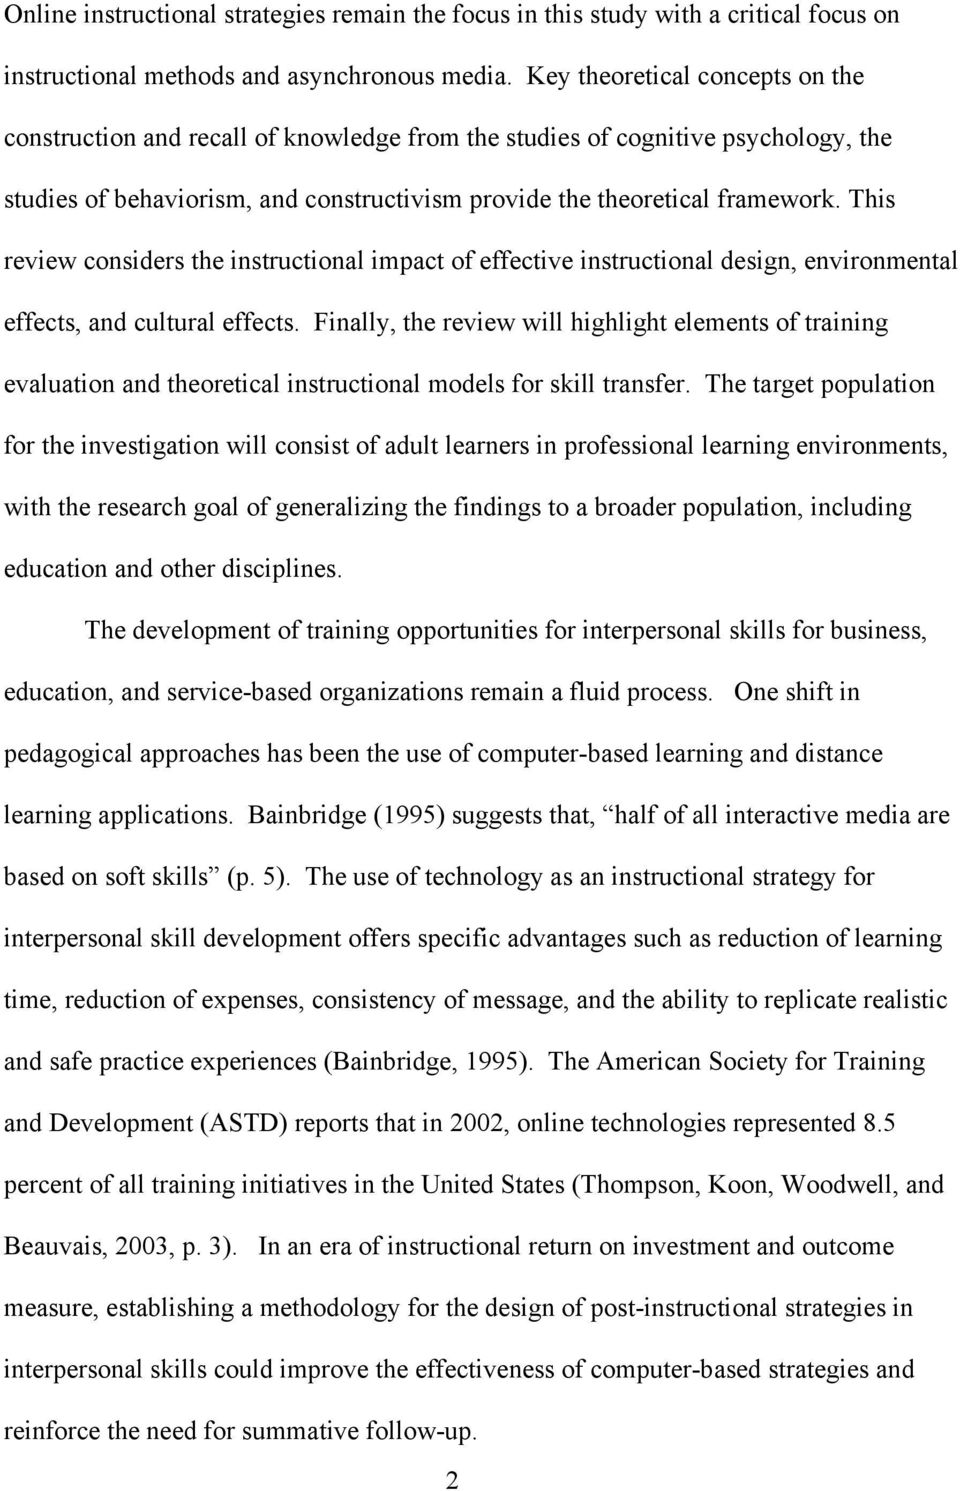 This review considers the instructional impact of effective instructional design, environmental effects, and cultural effects.